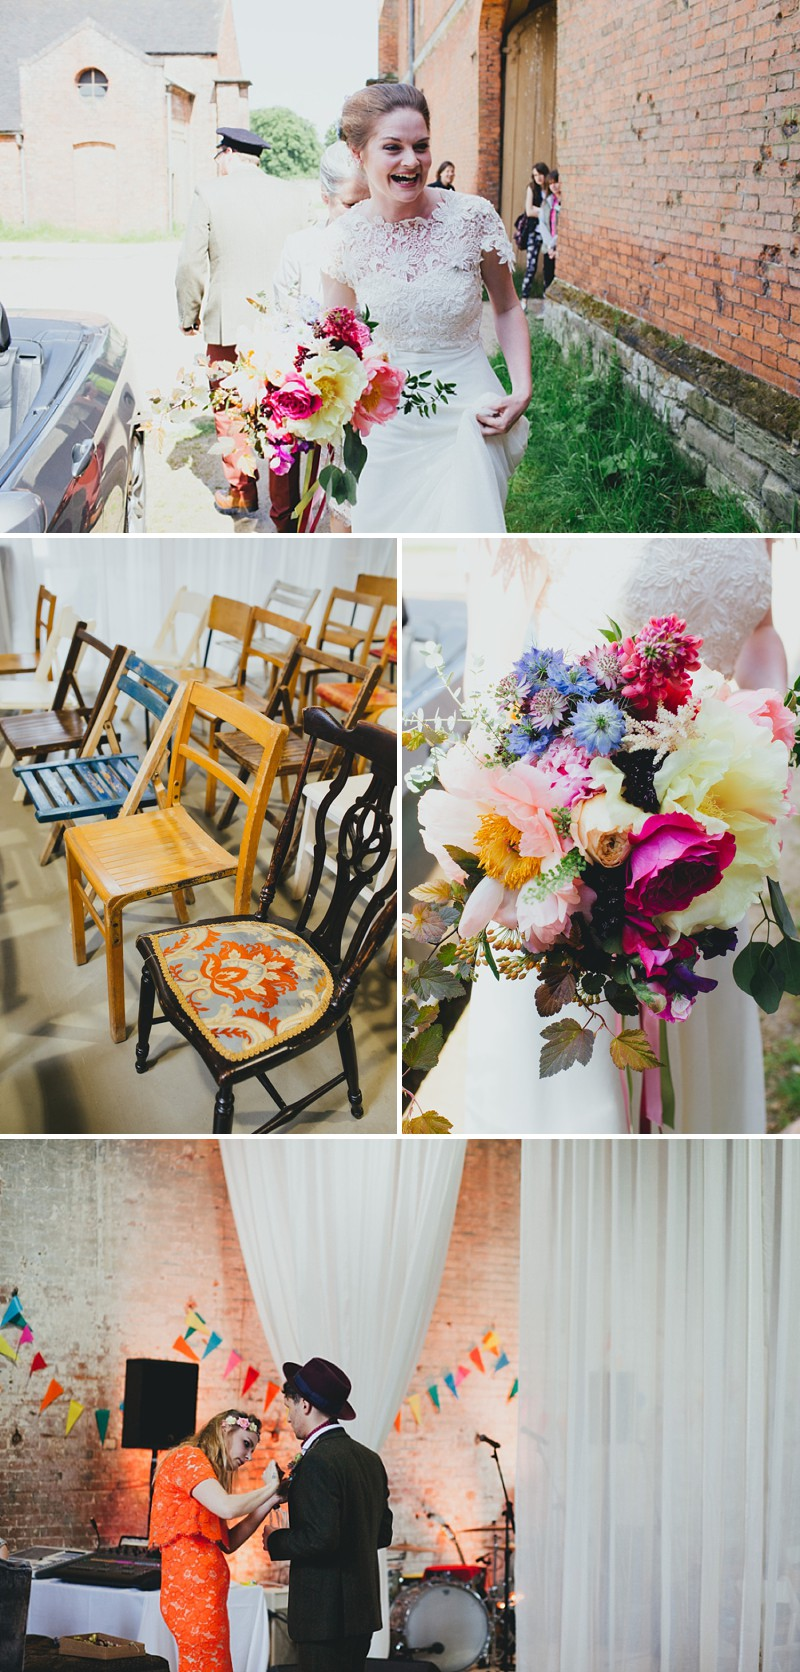 An alternative rock n roll wedding at Calke Abbey in Derbyshire with a bride in a Kula Tsurdiu gown and the most beautiful flowers by Honeysuckle and Castle_0206